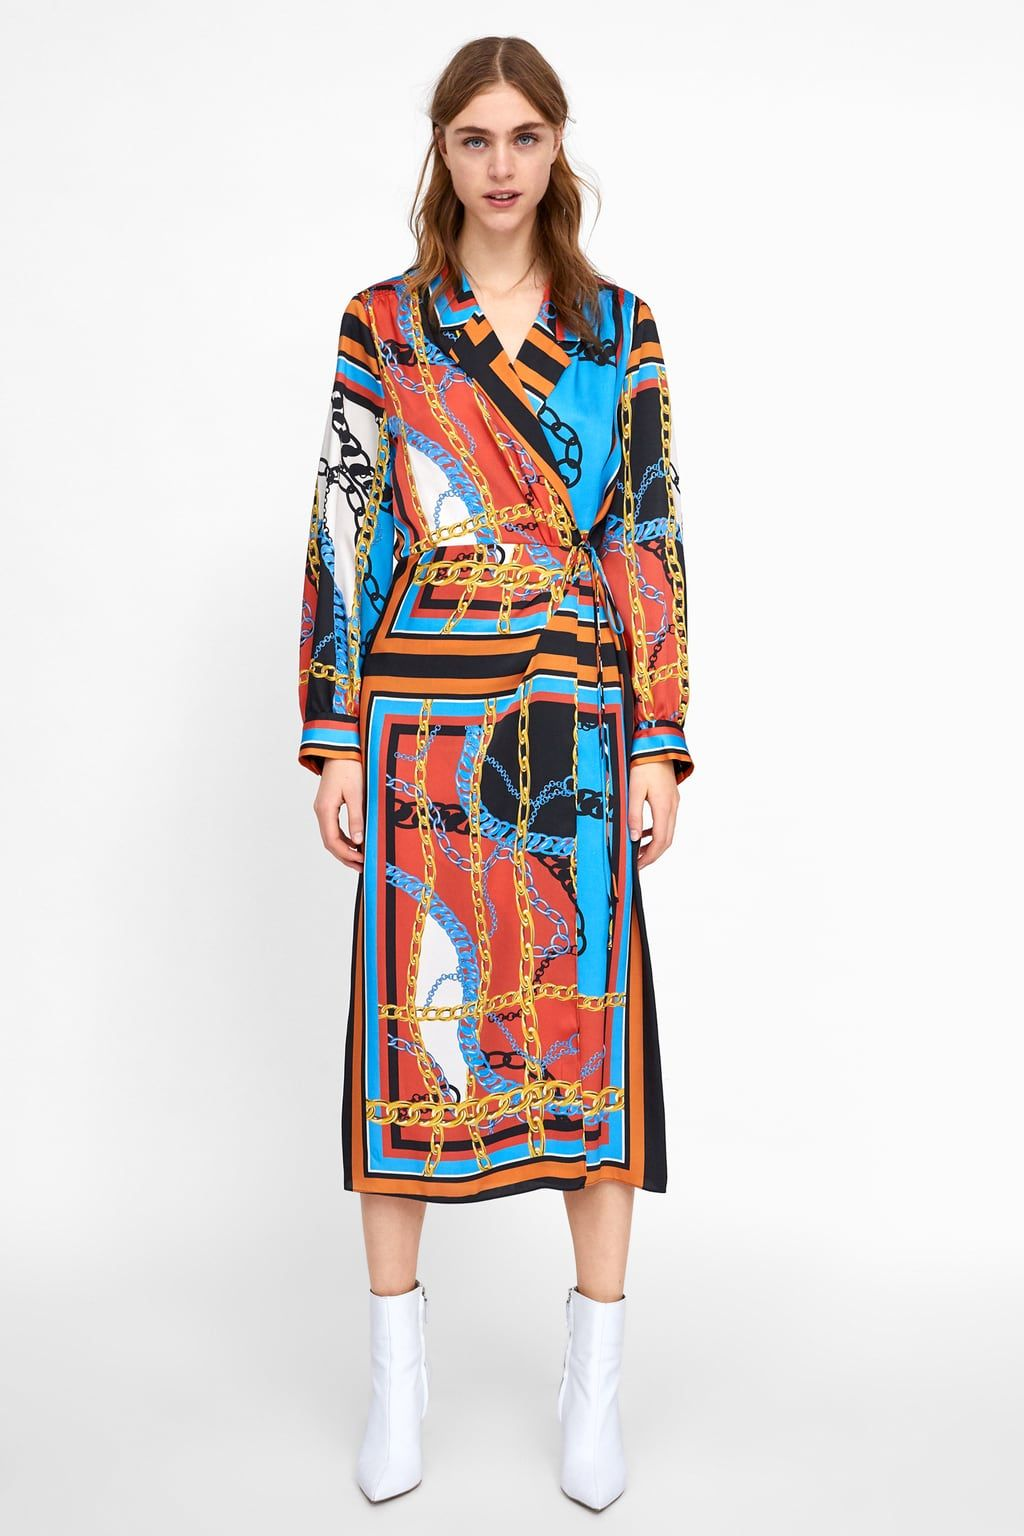 d23a1fee5358 Image 1 of CHAIN PRINT DRESS from Zara | Projects to try in 2019 ...